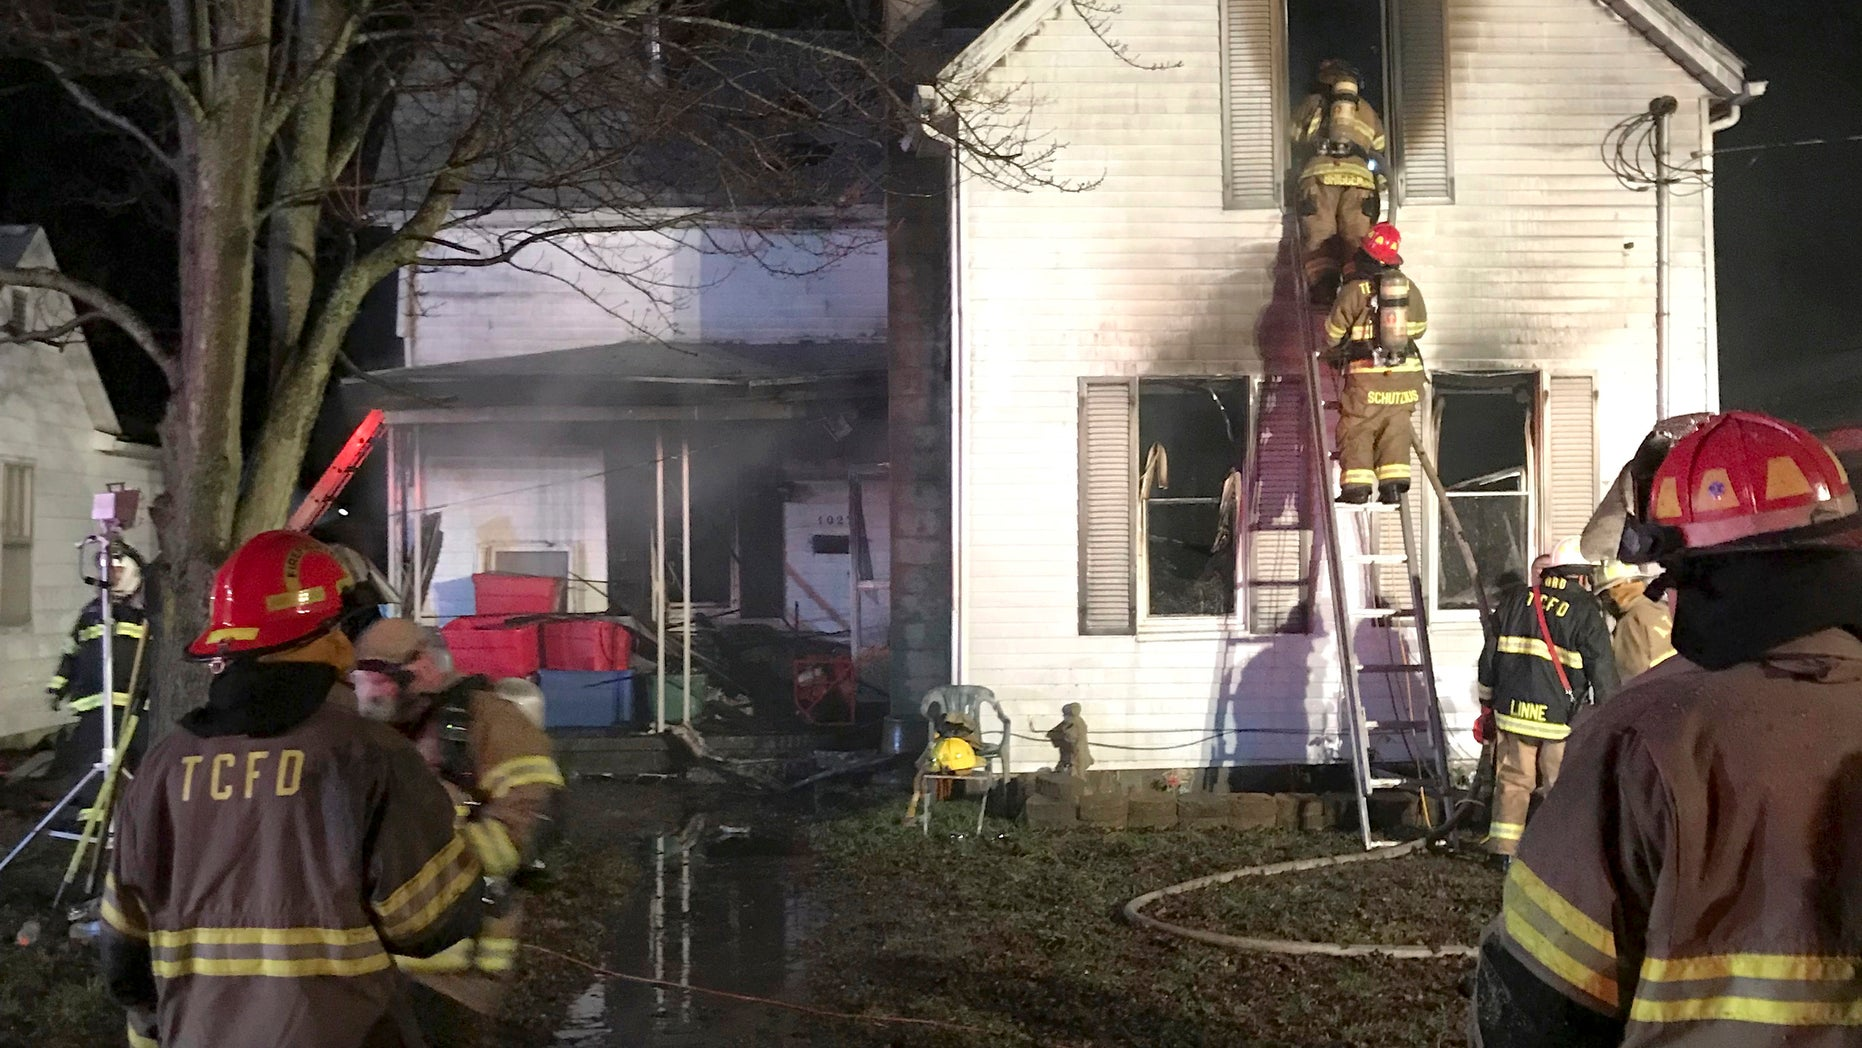 Southern Indiana house fire kills 3 young siblings, hospitalizes mom